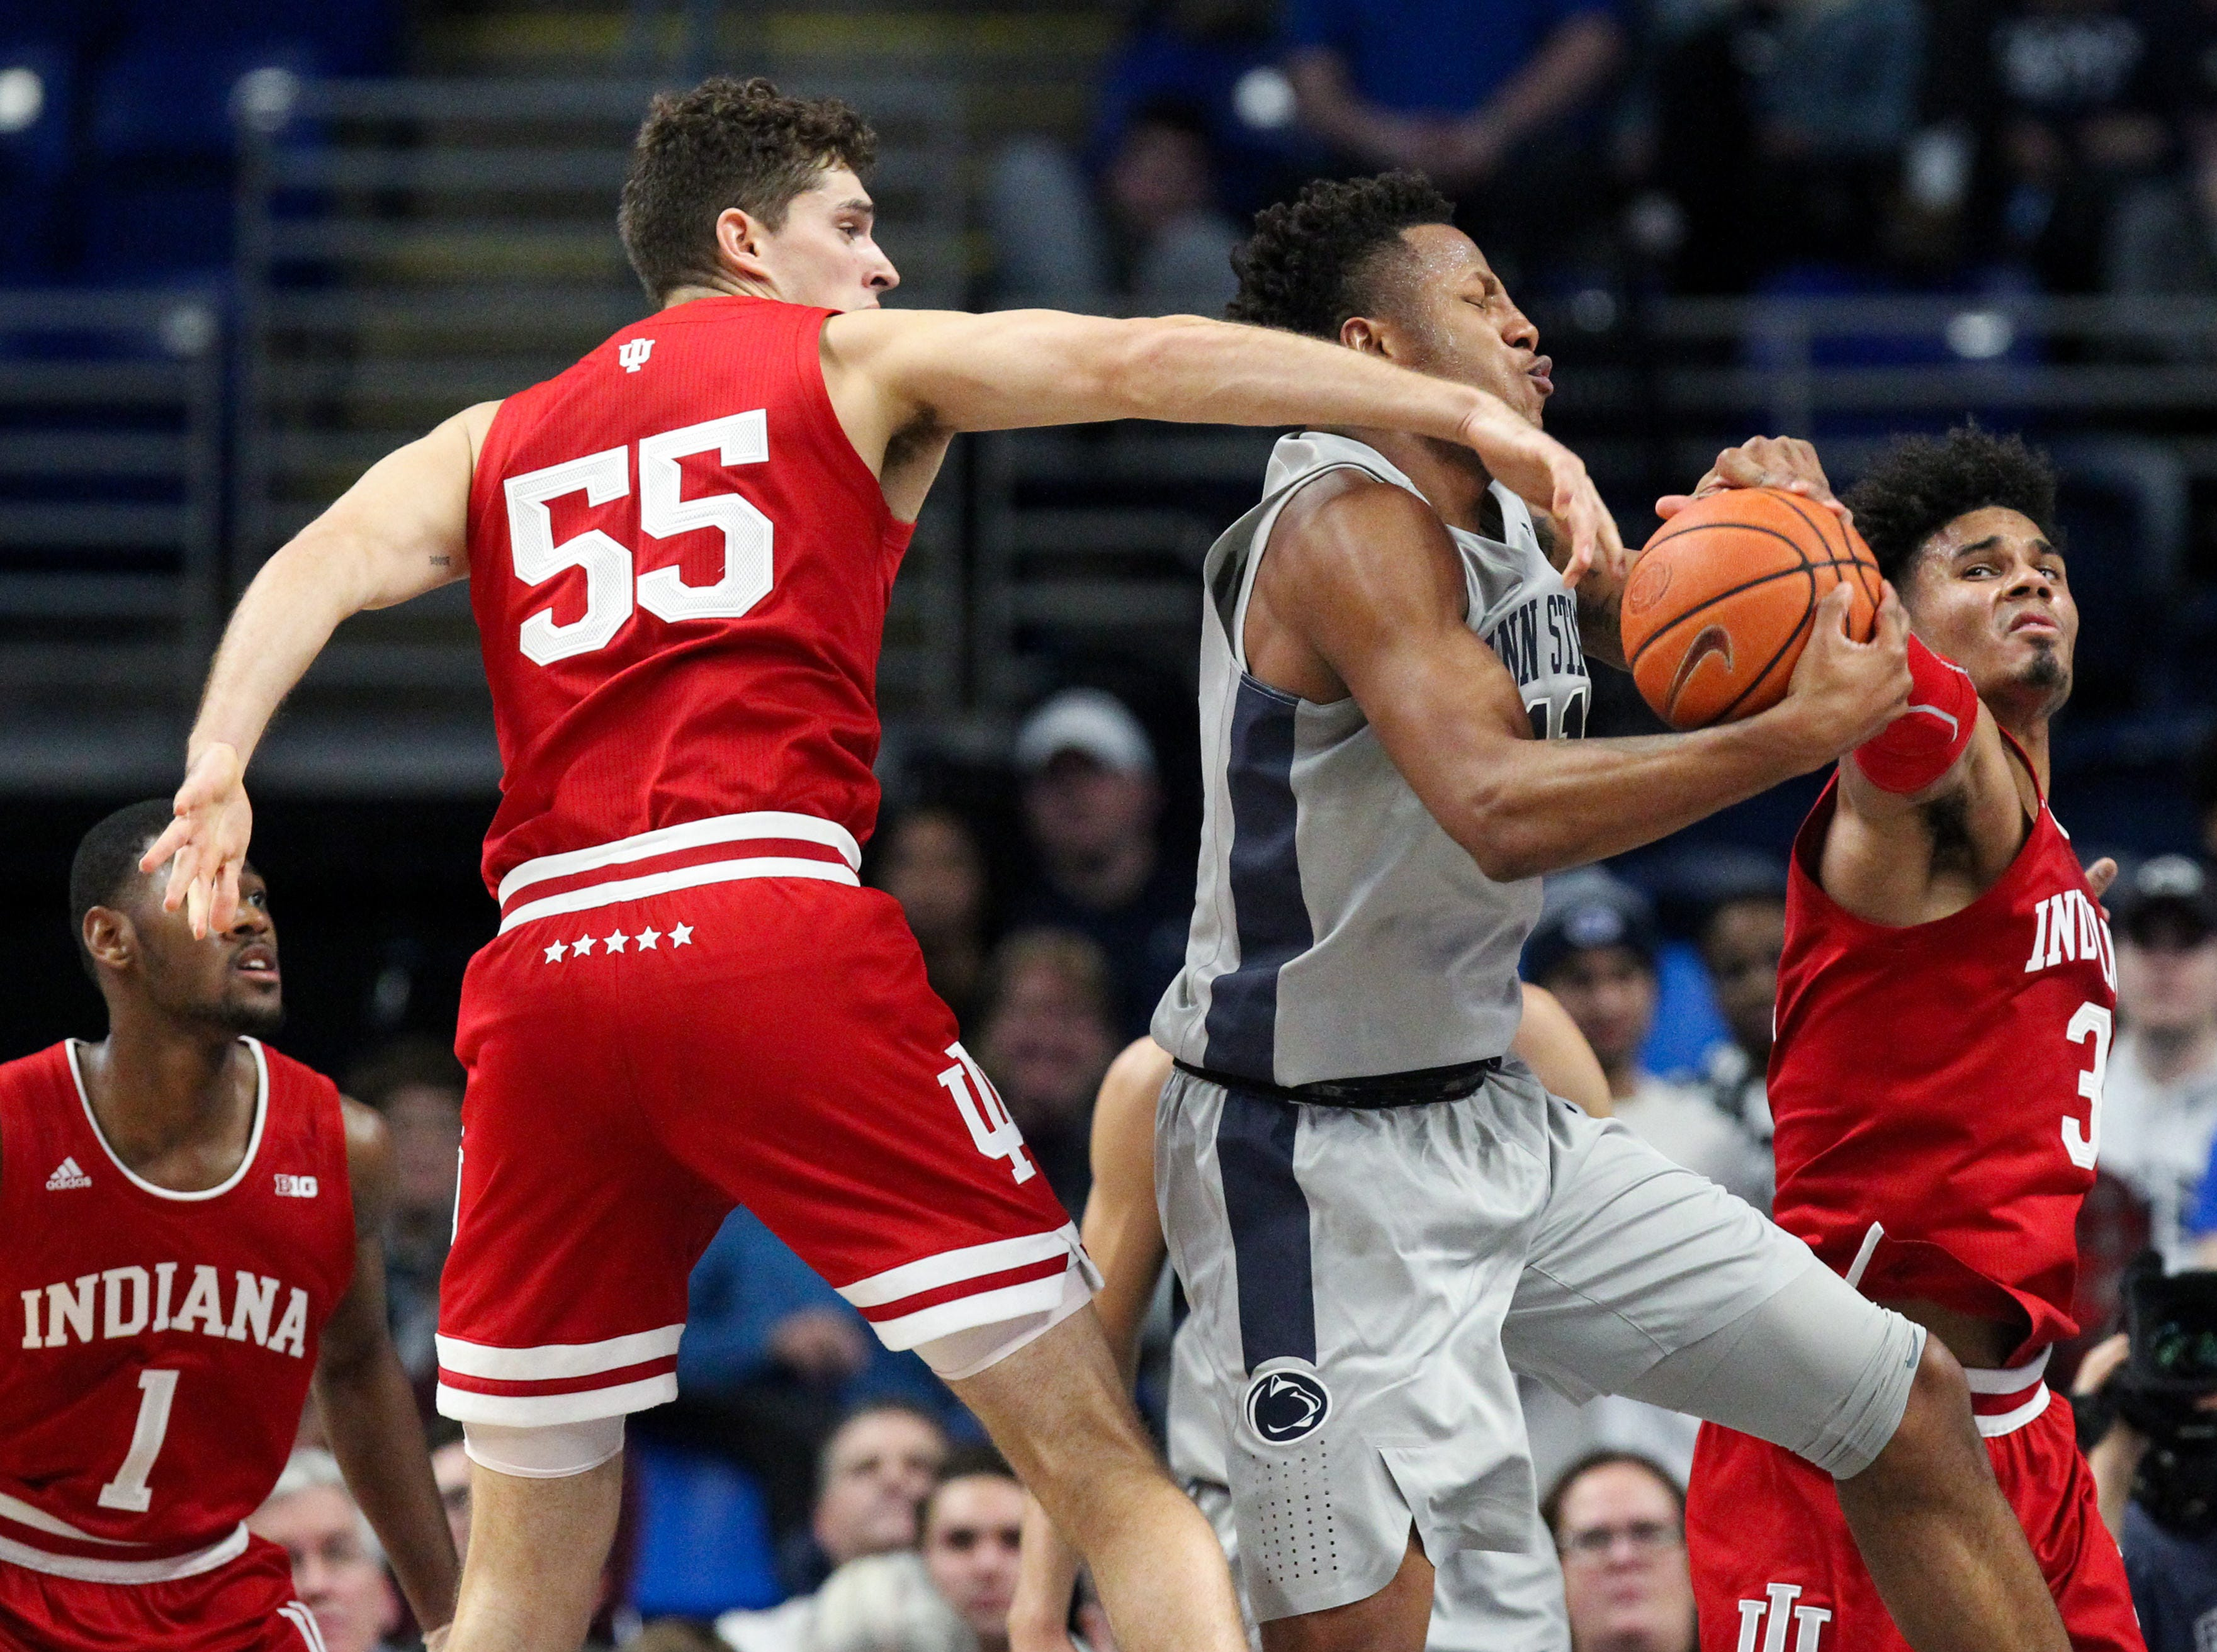 Dec 4, 2018; University Park, PA, USA; Penn State Nittany Lions forward Lamar Stevens (11) drives to the basket against Indiana Hoosiers forward Evan Fitzner (55) and forward Justin Smith (3) during the second half at Bryce Jordan Center. Indiana defeated Penn State 64-62. Mandatory Credit: Matthew O'Haren-USA TODAY Sports